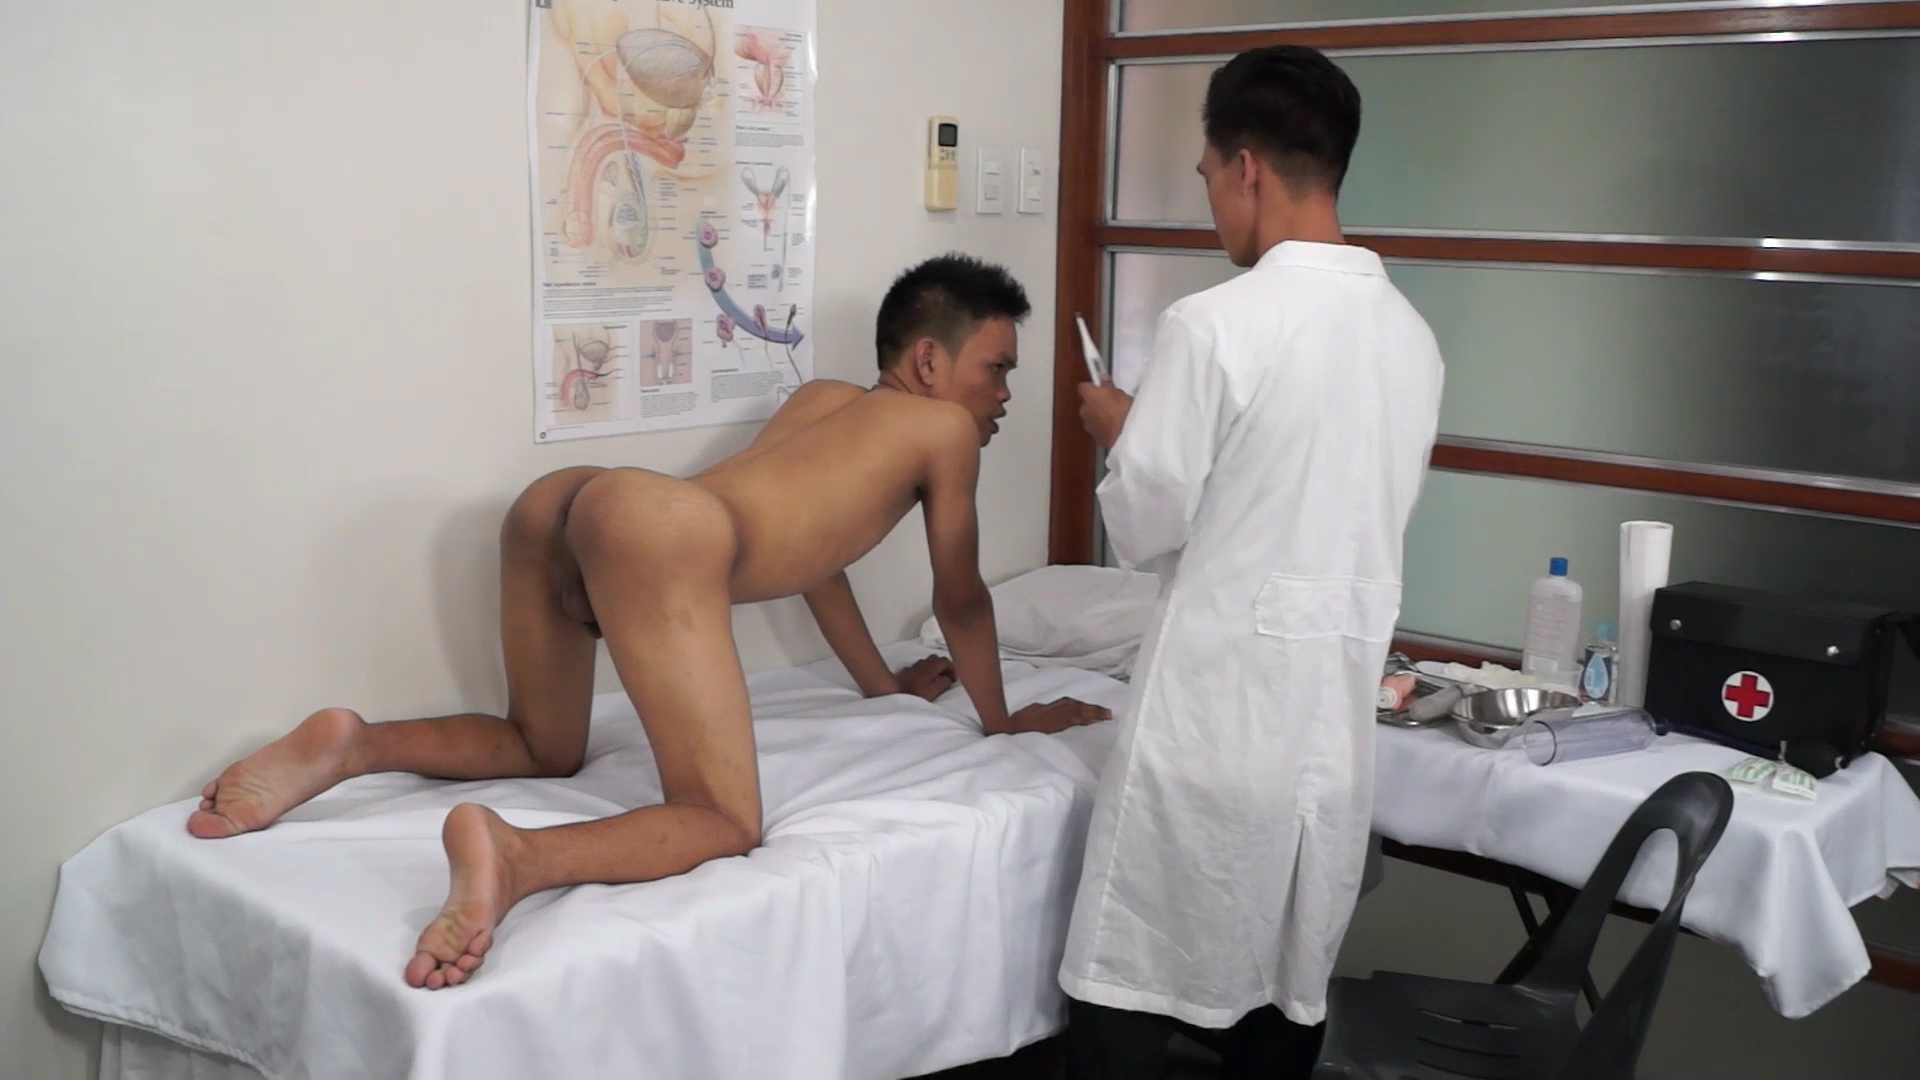 Asian Twink Medical Fetish Anal Probing - DoctorTwink hottest black tranny fucks tied guy porn